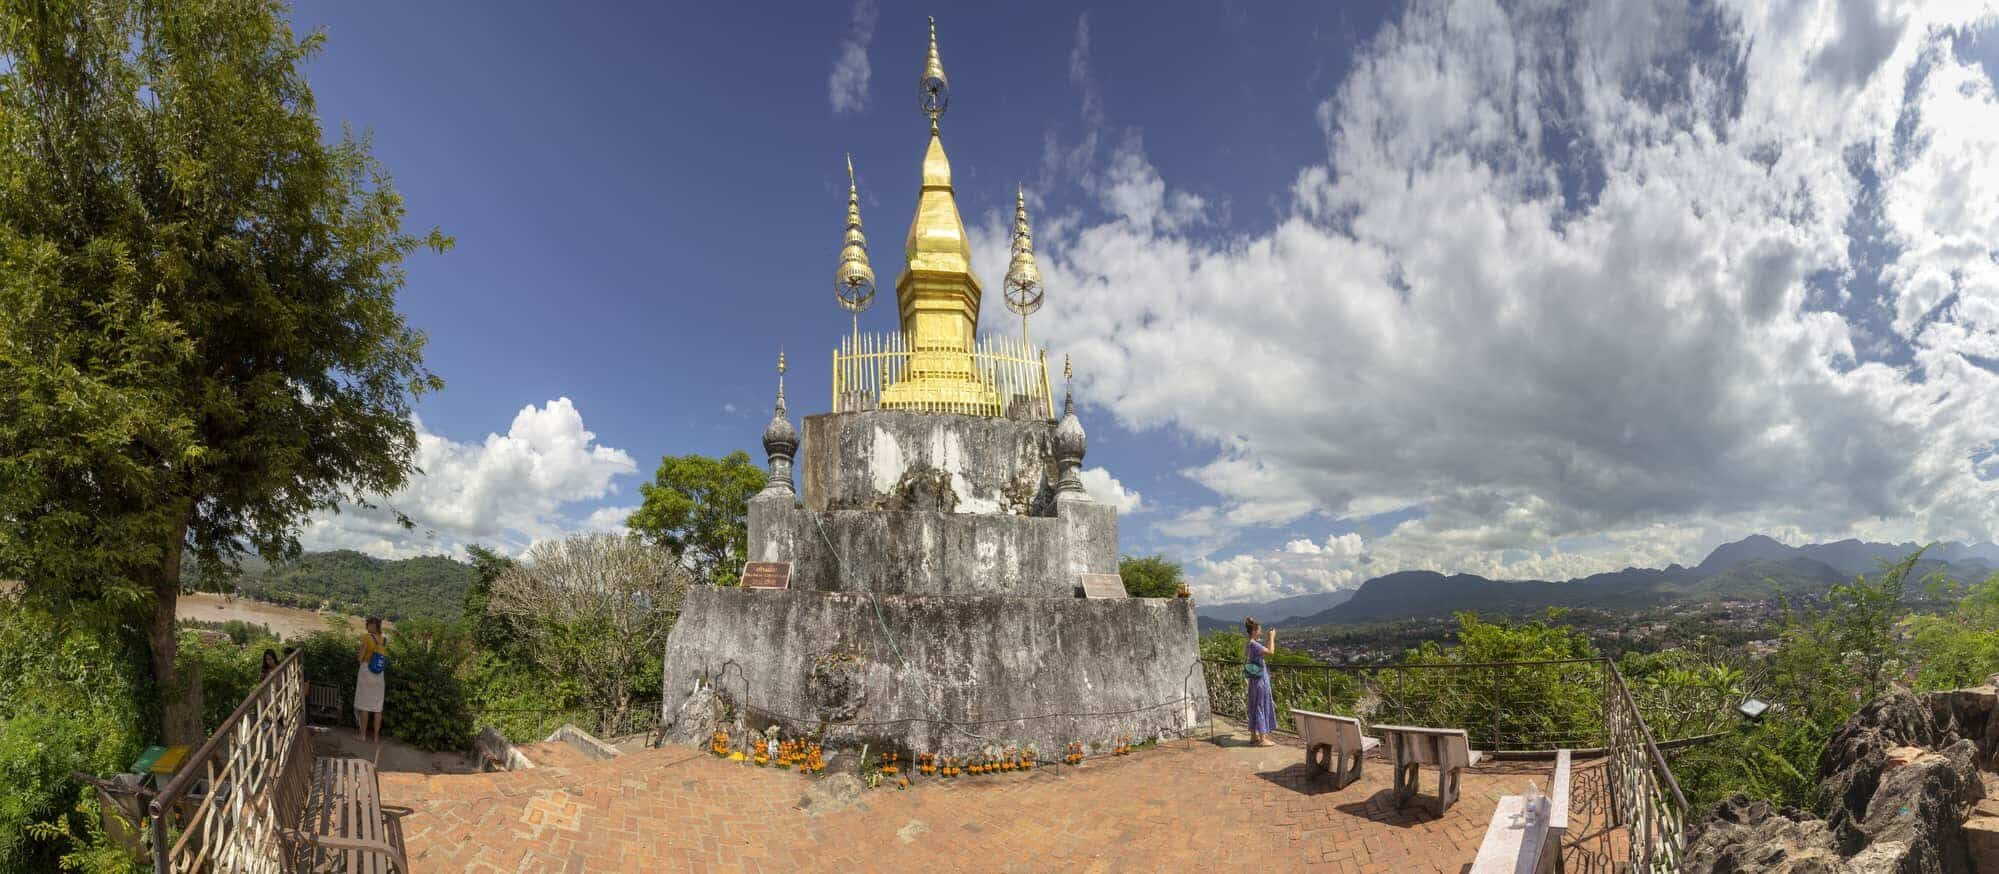 The golden stupa on the top of Mount Phou Si in Luang Prabang, Laos.